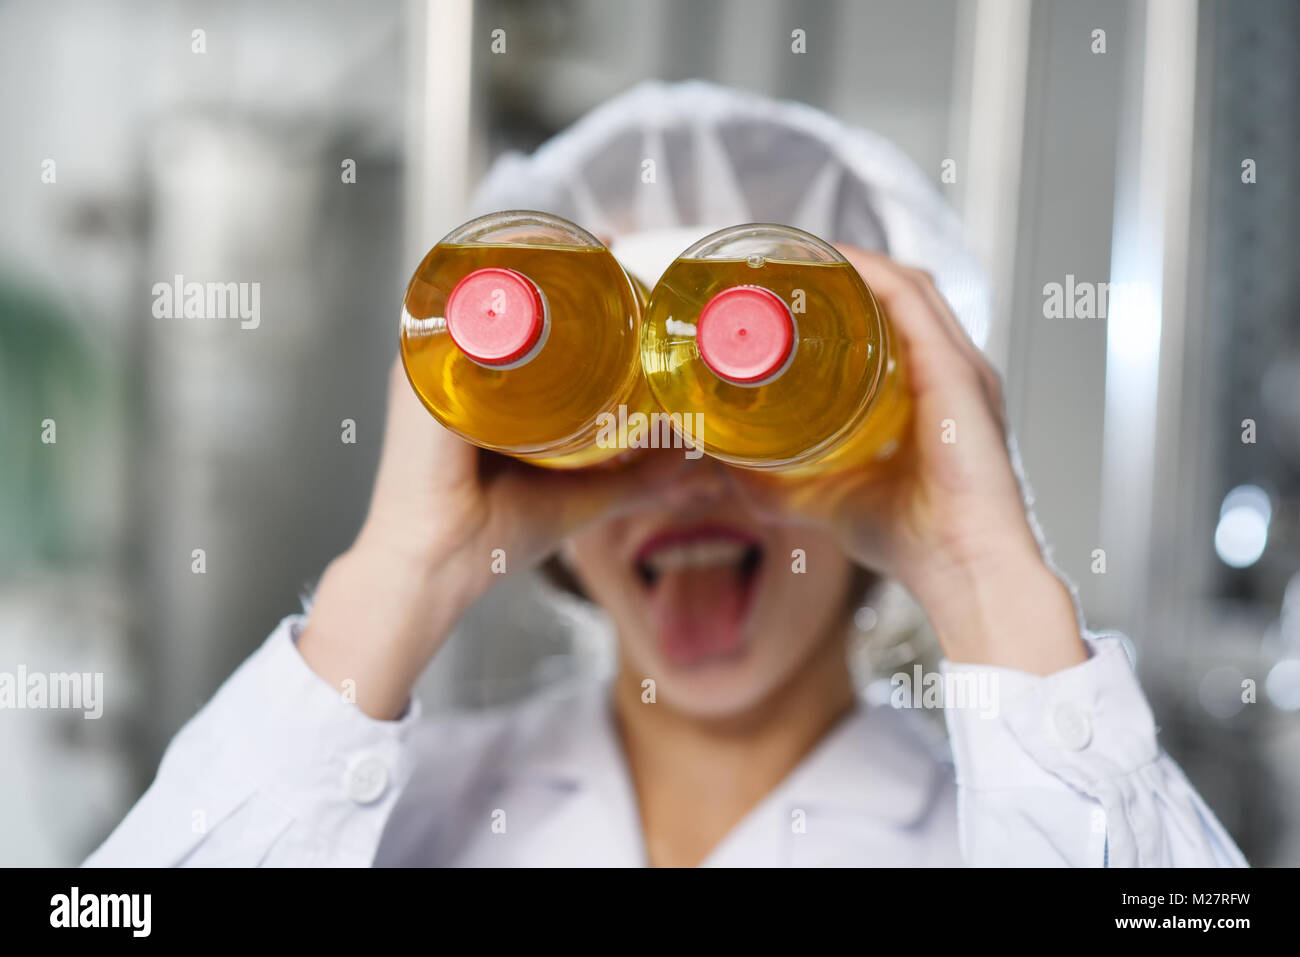 girl sticking out her tongue with bottles - Stock Image